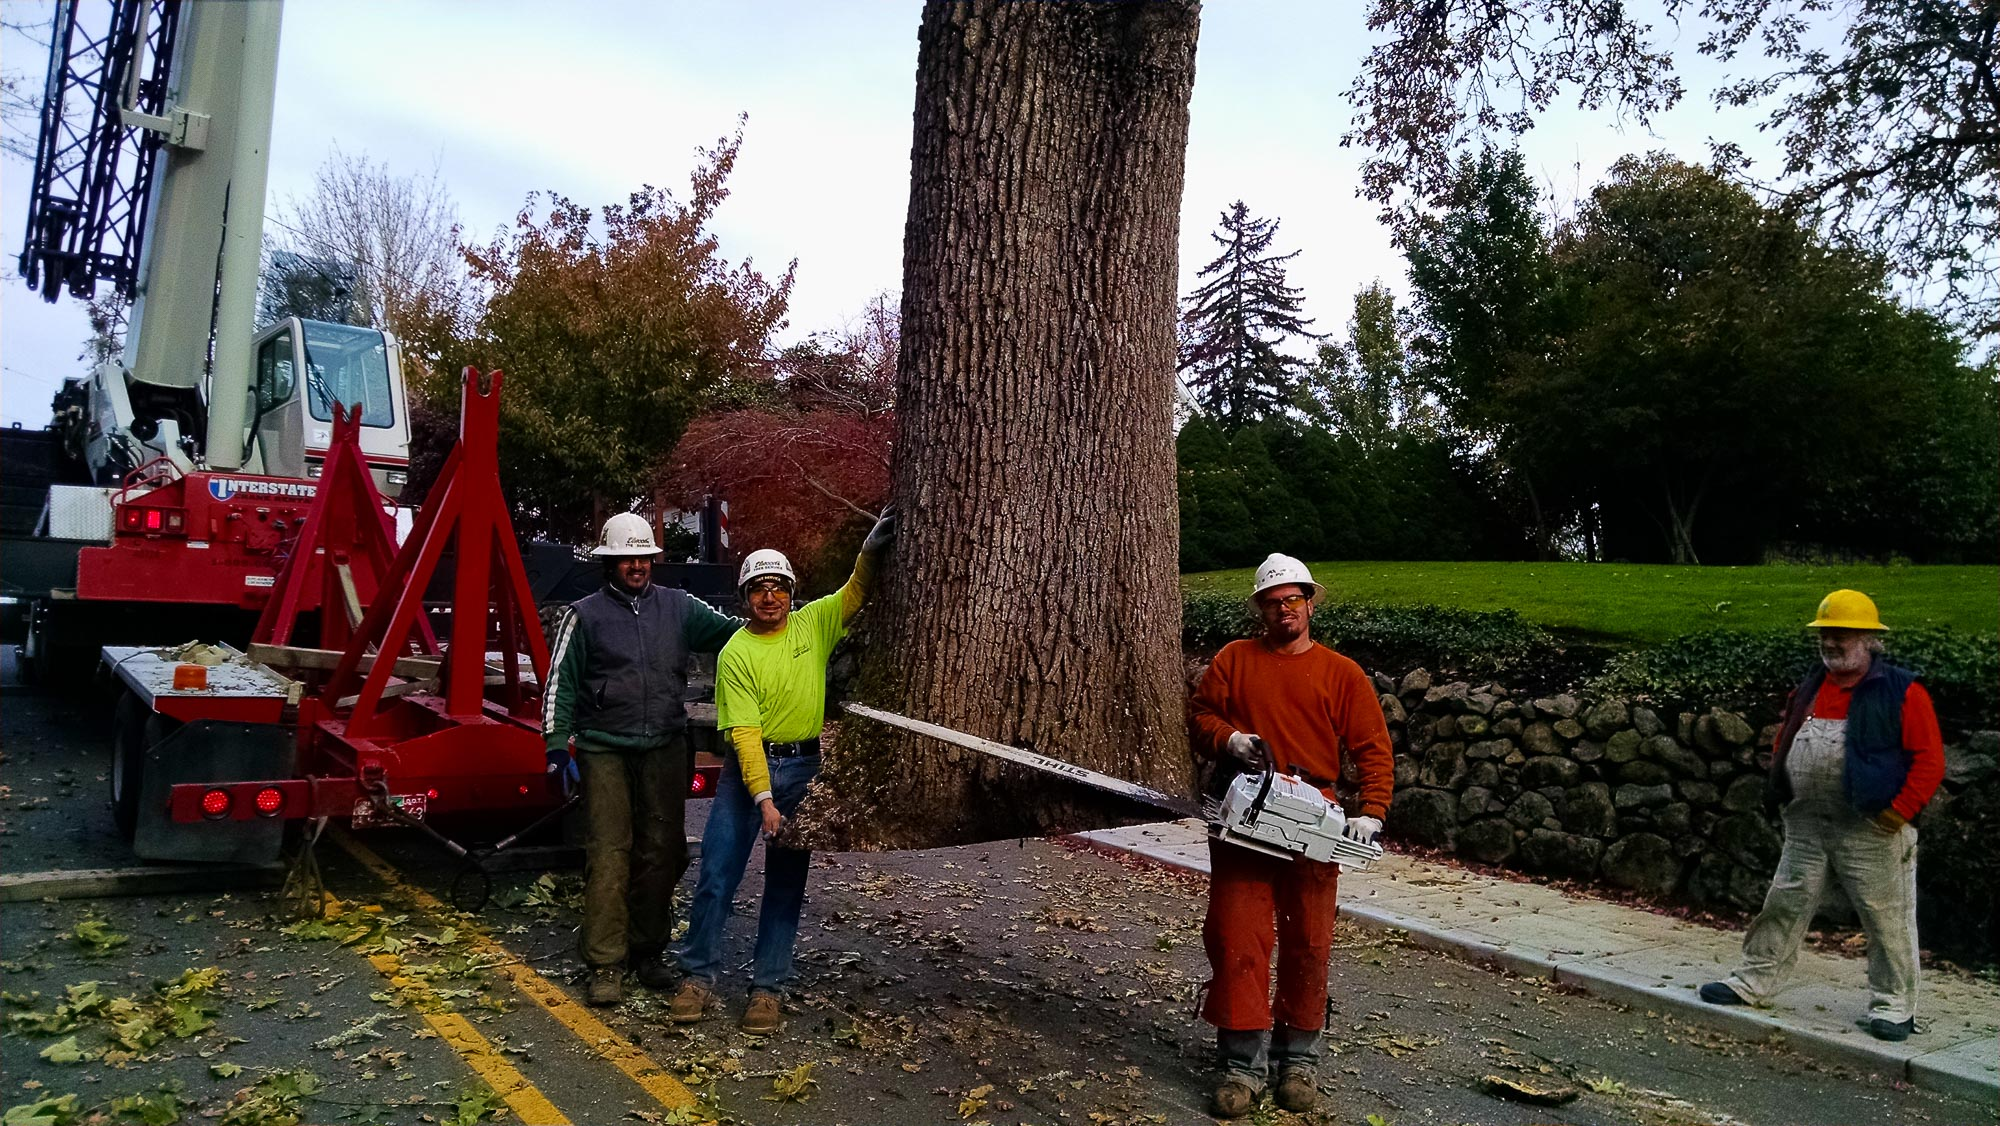 tree-service-removal-pruning-salem-oregon-560